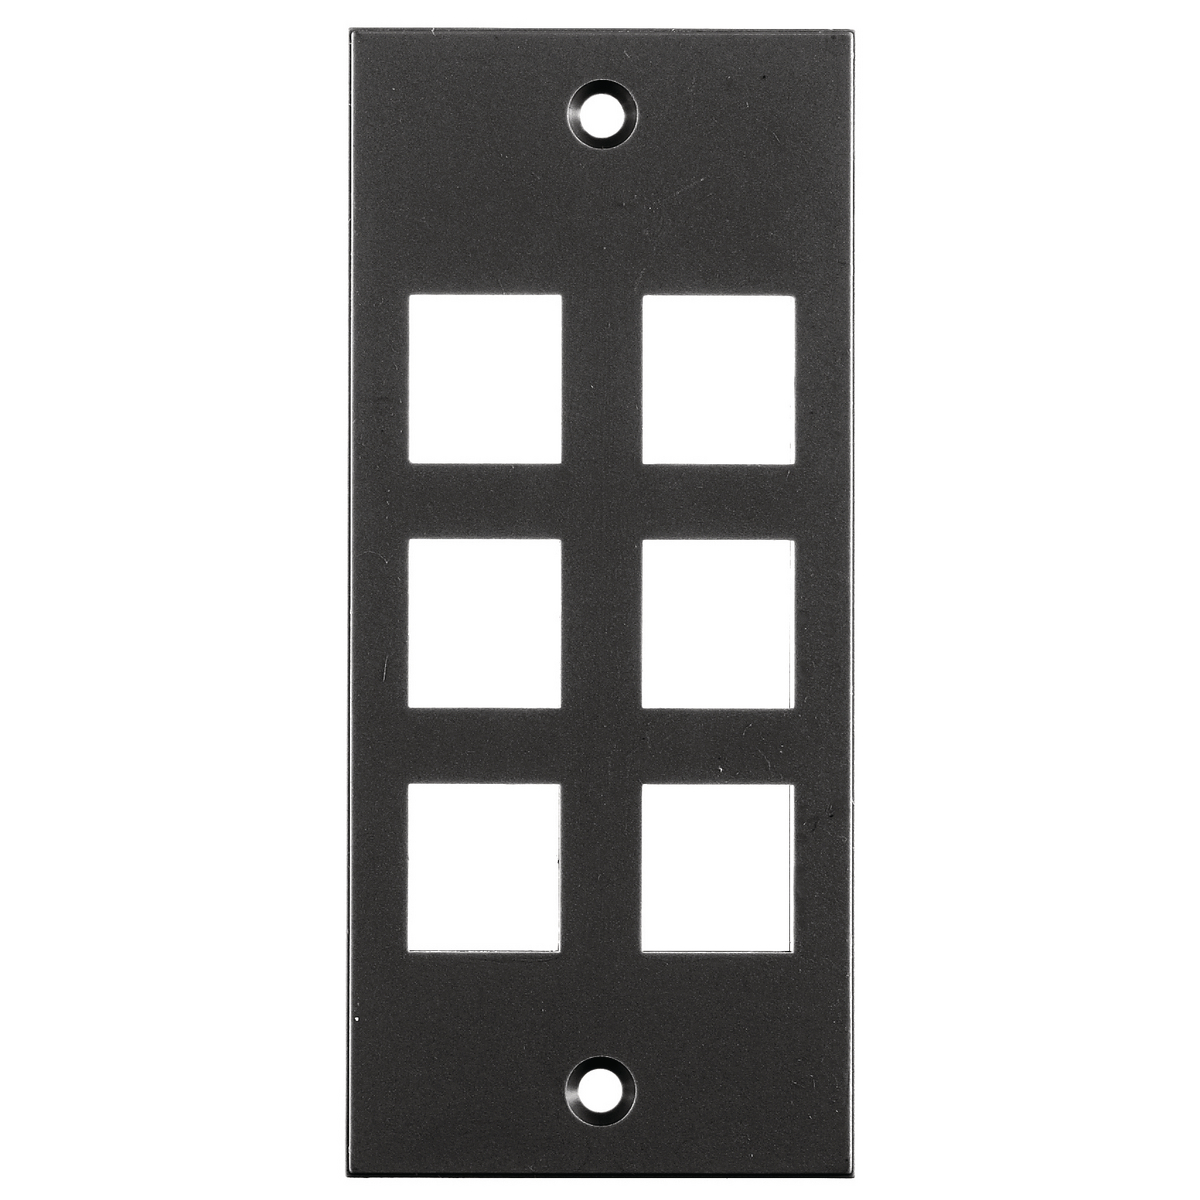 Hubbell HBL317SBK 6-Port 2 x 4.5 Inch Black Screw Type Face Plate